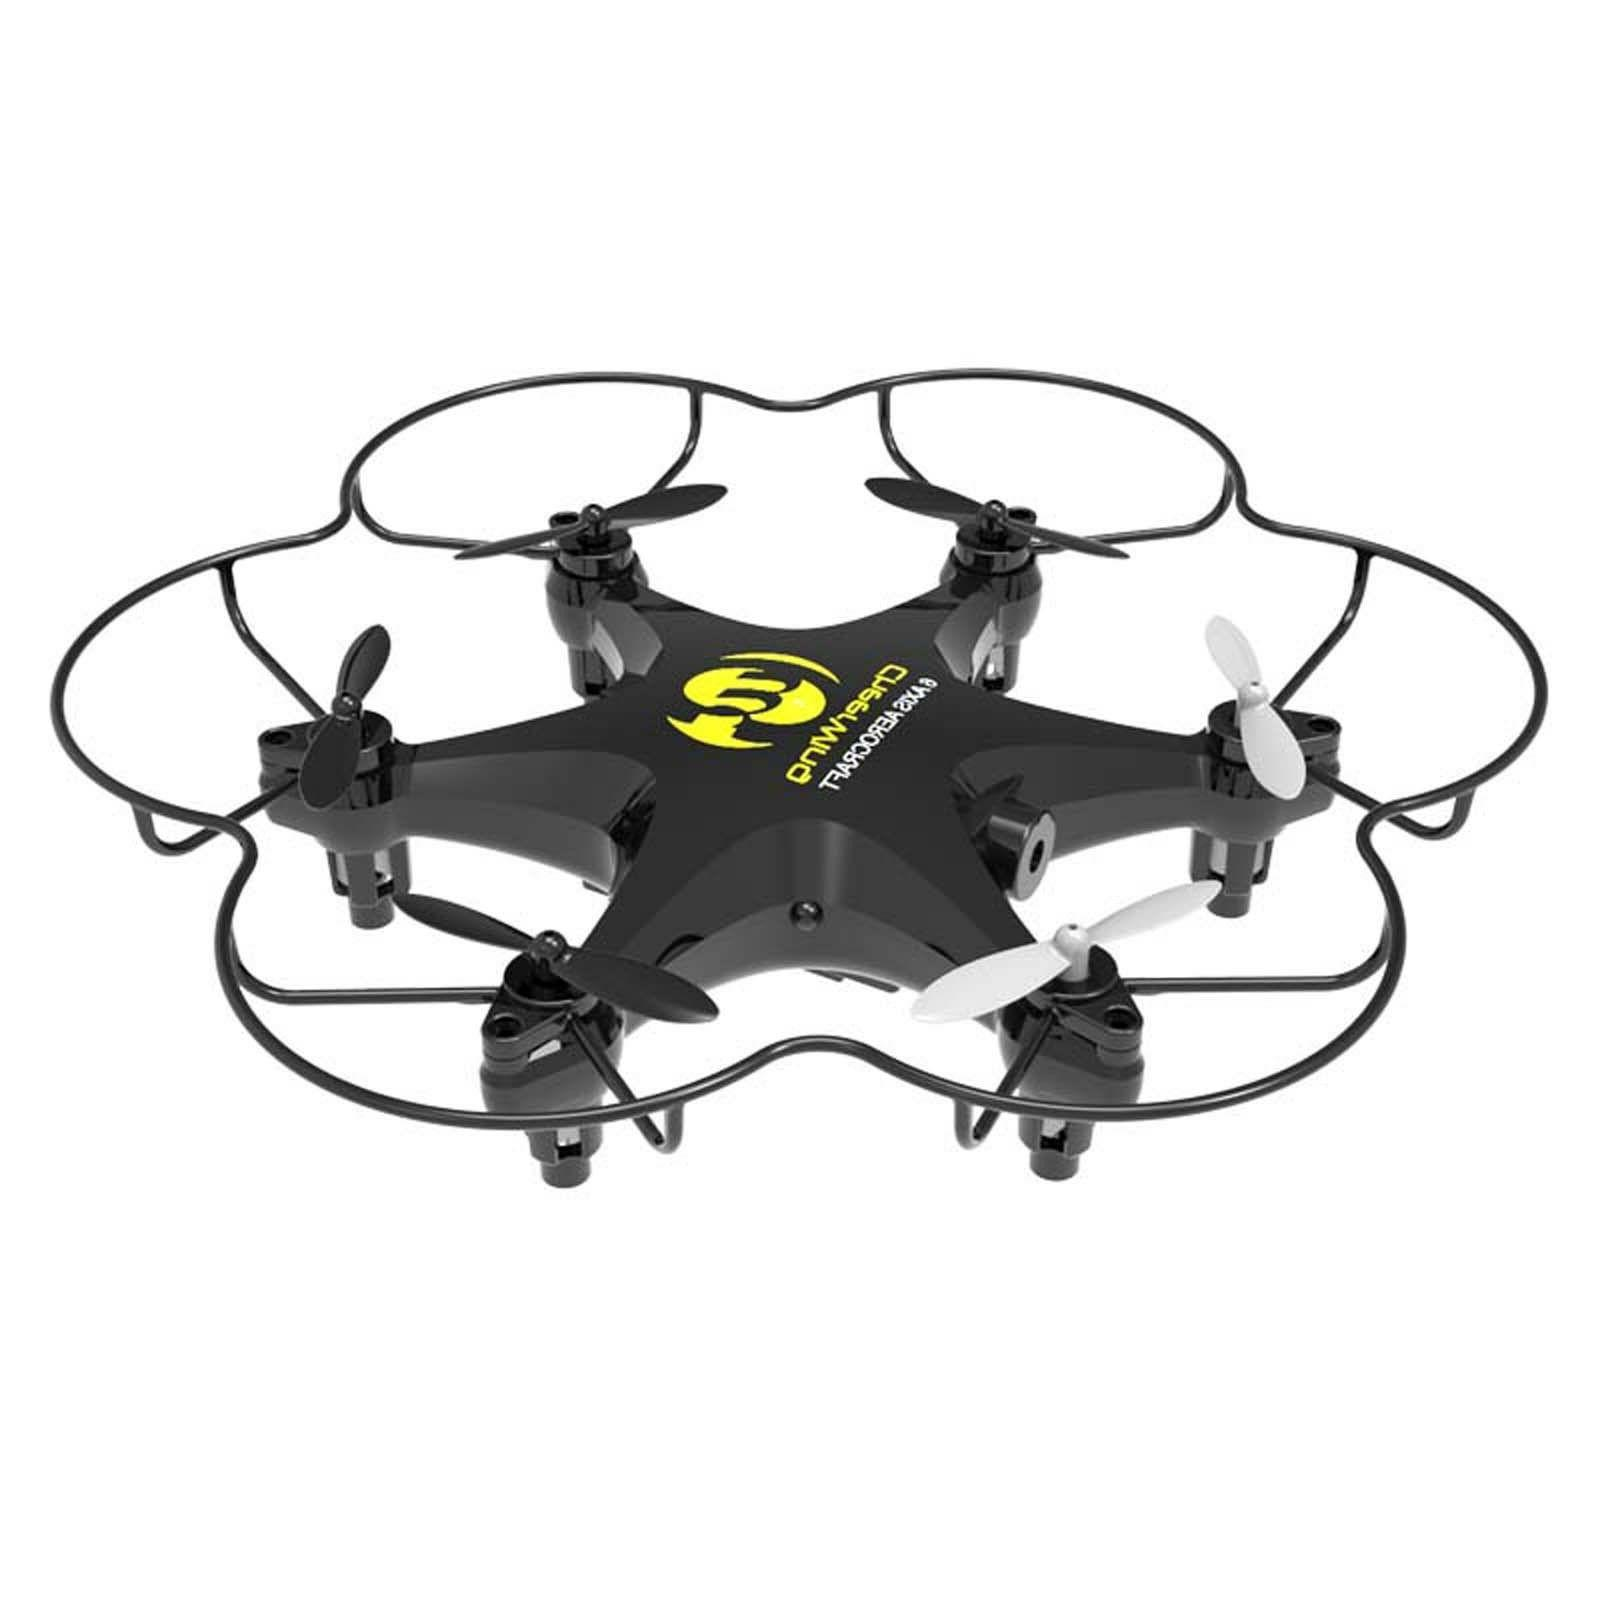 Cheerwing 6-Axis Remote Control Quadcopter